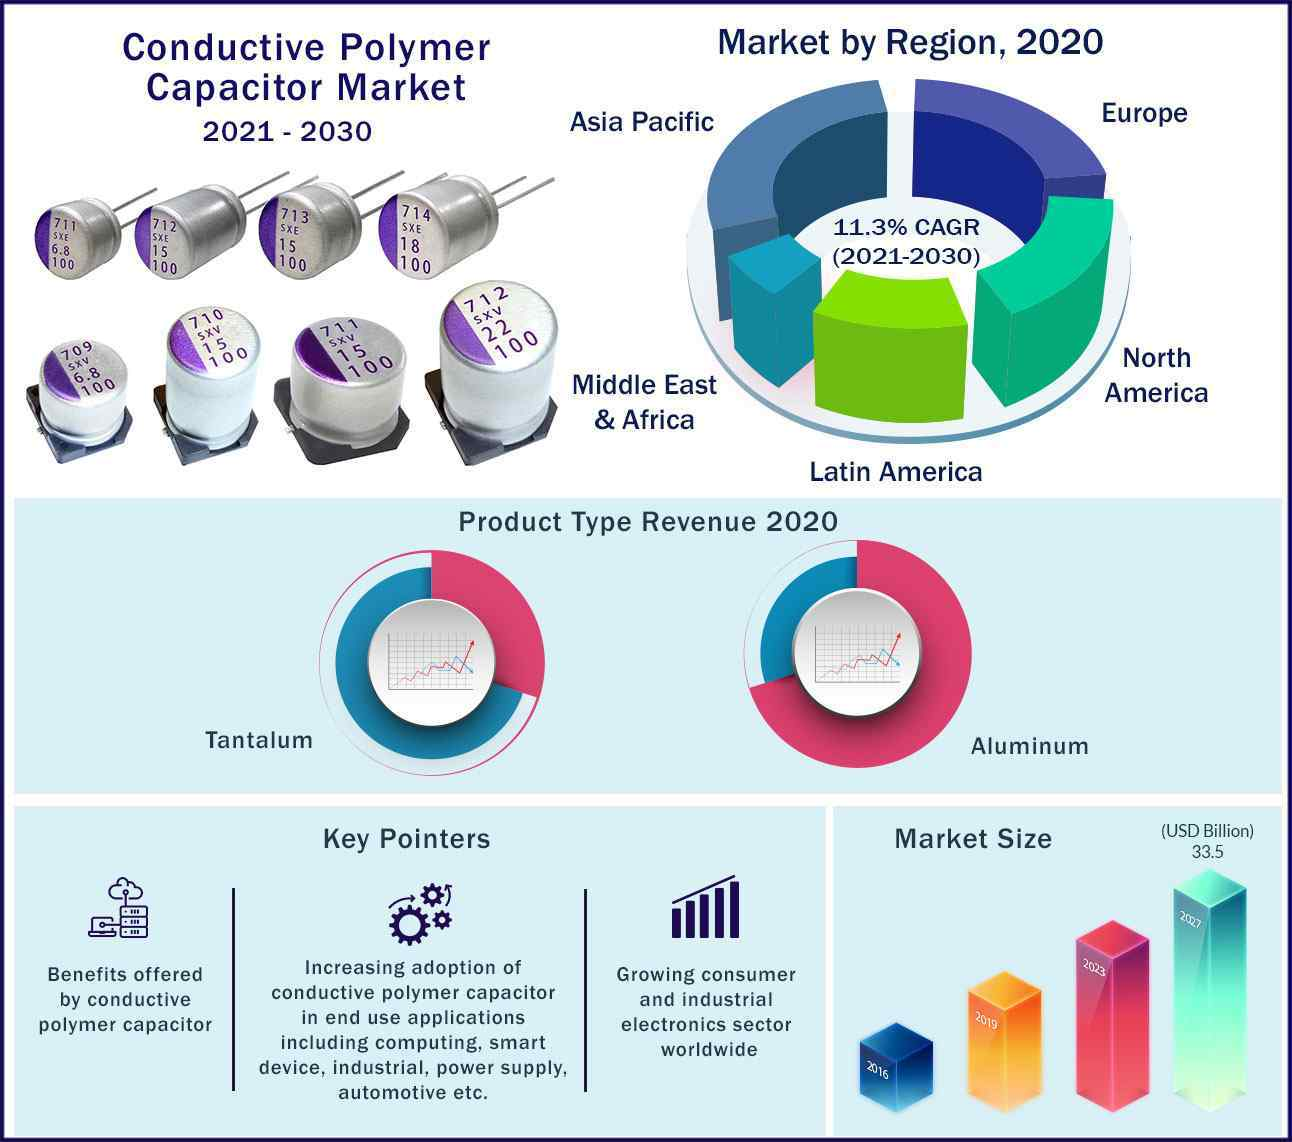 Global Conductive Polymer Capacitor Market 2021-2030